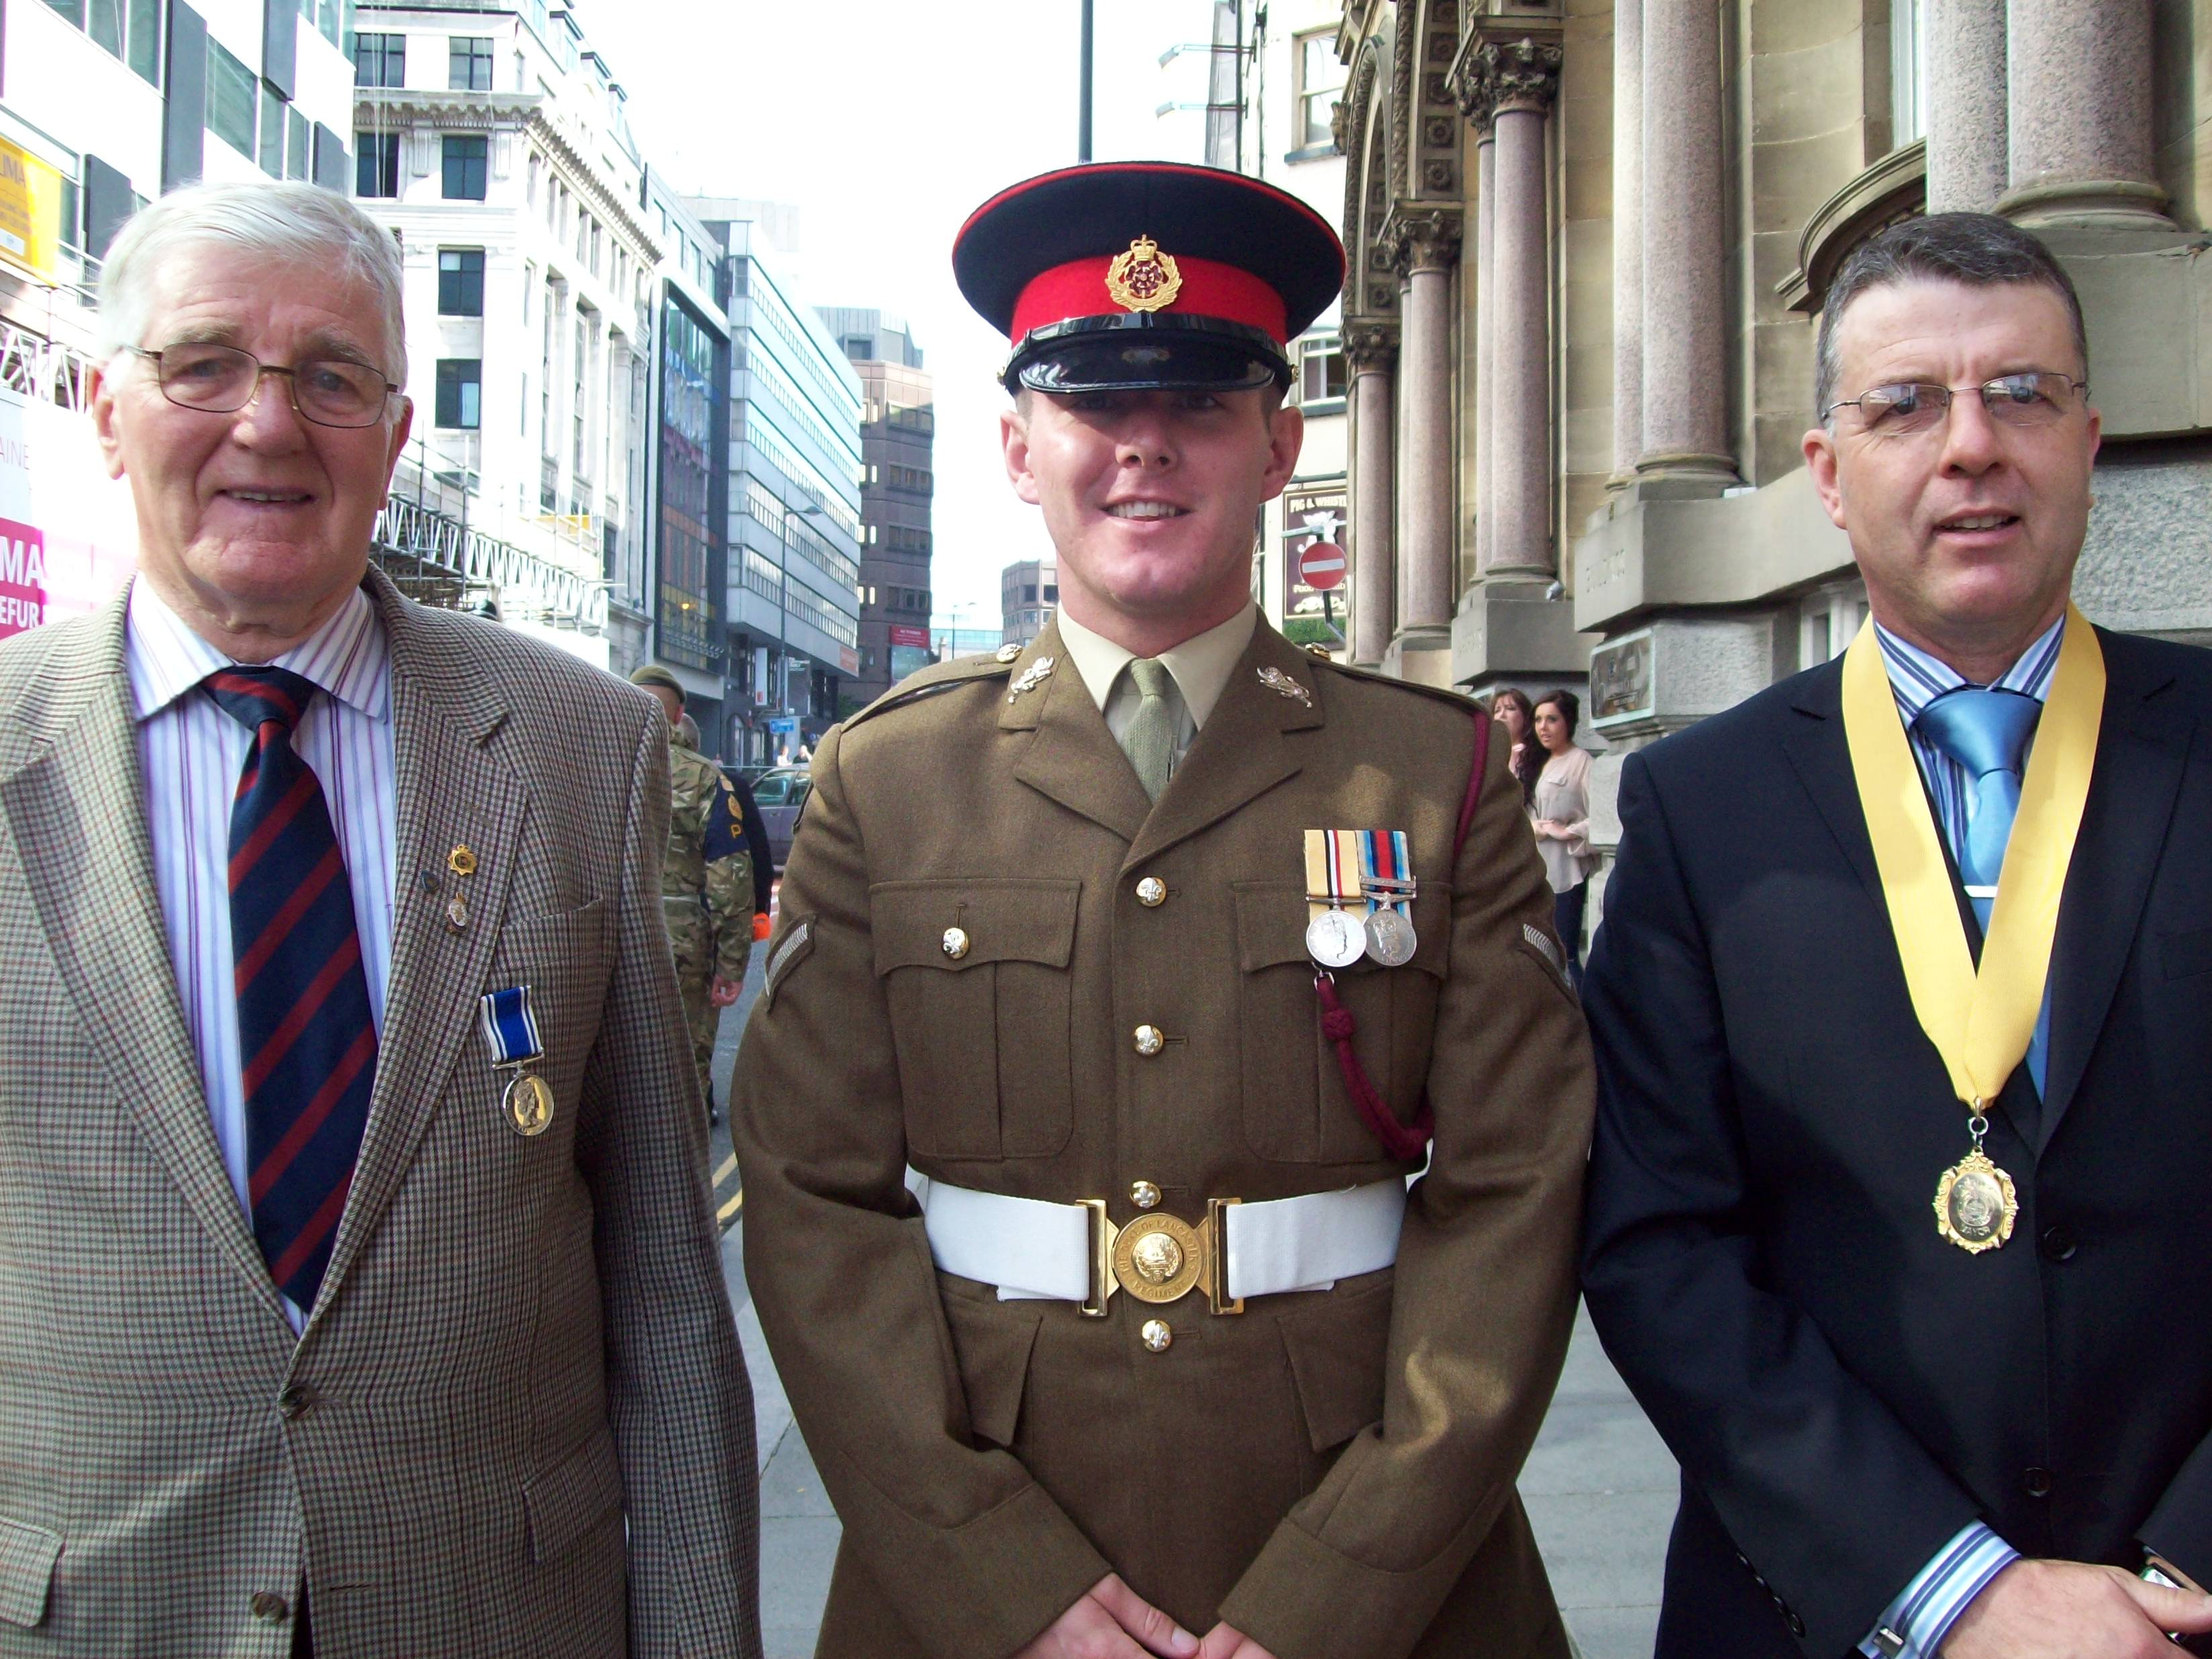 Deputy Mayor of Maghull Cllr Steve Kermode with dad James Kermode and Lance Corporal Wayne Floyd of the 2nd Battalion, The Duke of Lancaster's Regiment.